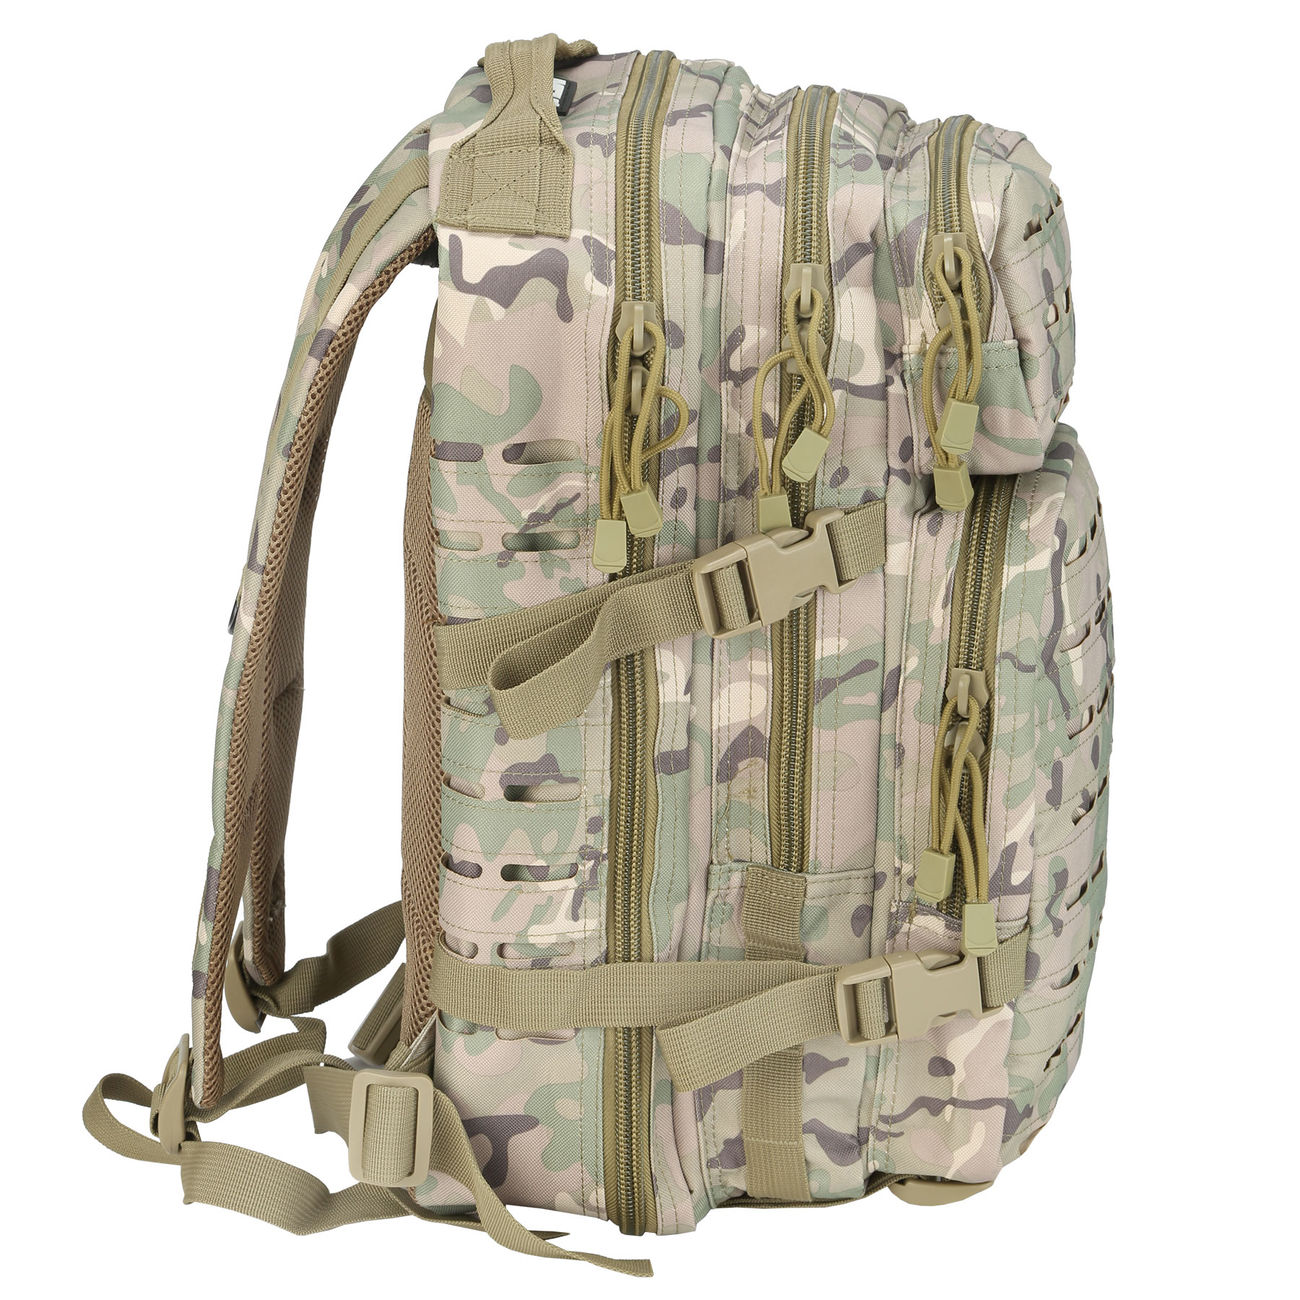 MFH Rucksack US Assault I Laser 30L operation-camo 1